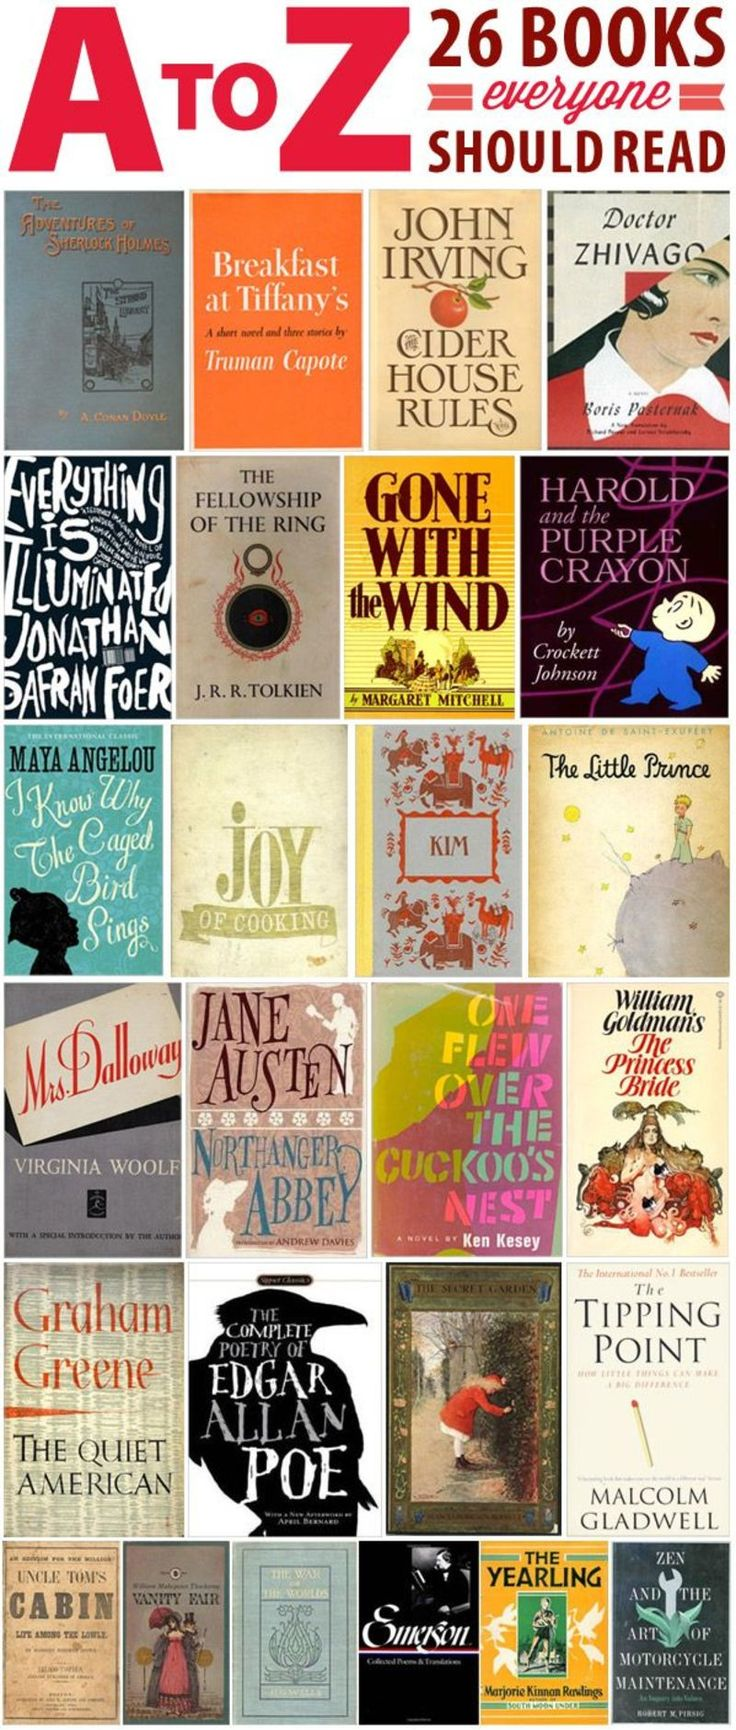 For More Mustread Books, Check Out 40 Classic Books You Should Have Read